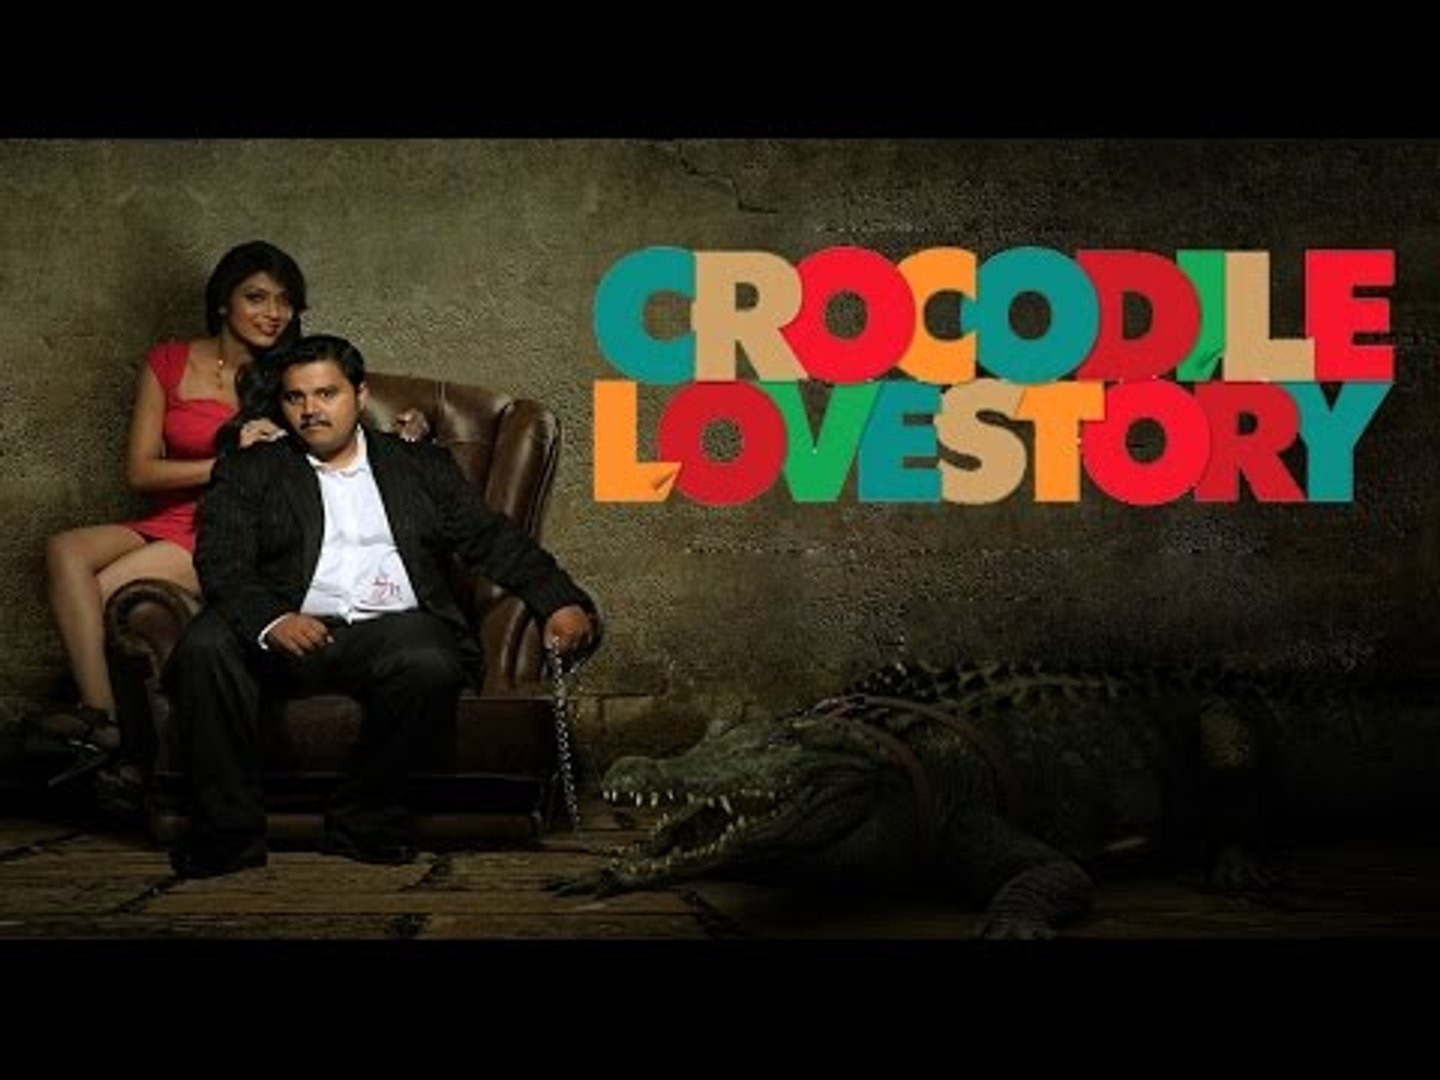 Crocodile Love Story Malayalam Movie 2013 | New Malayalam Movie 2013 | Full Movie 2013